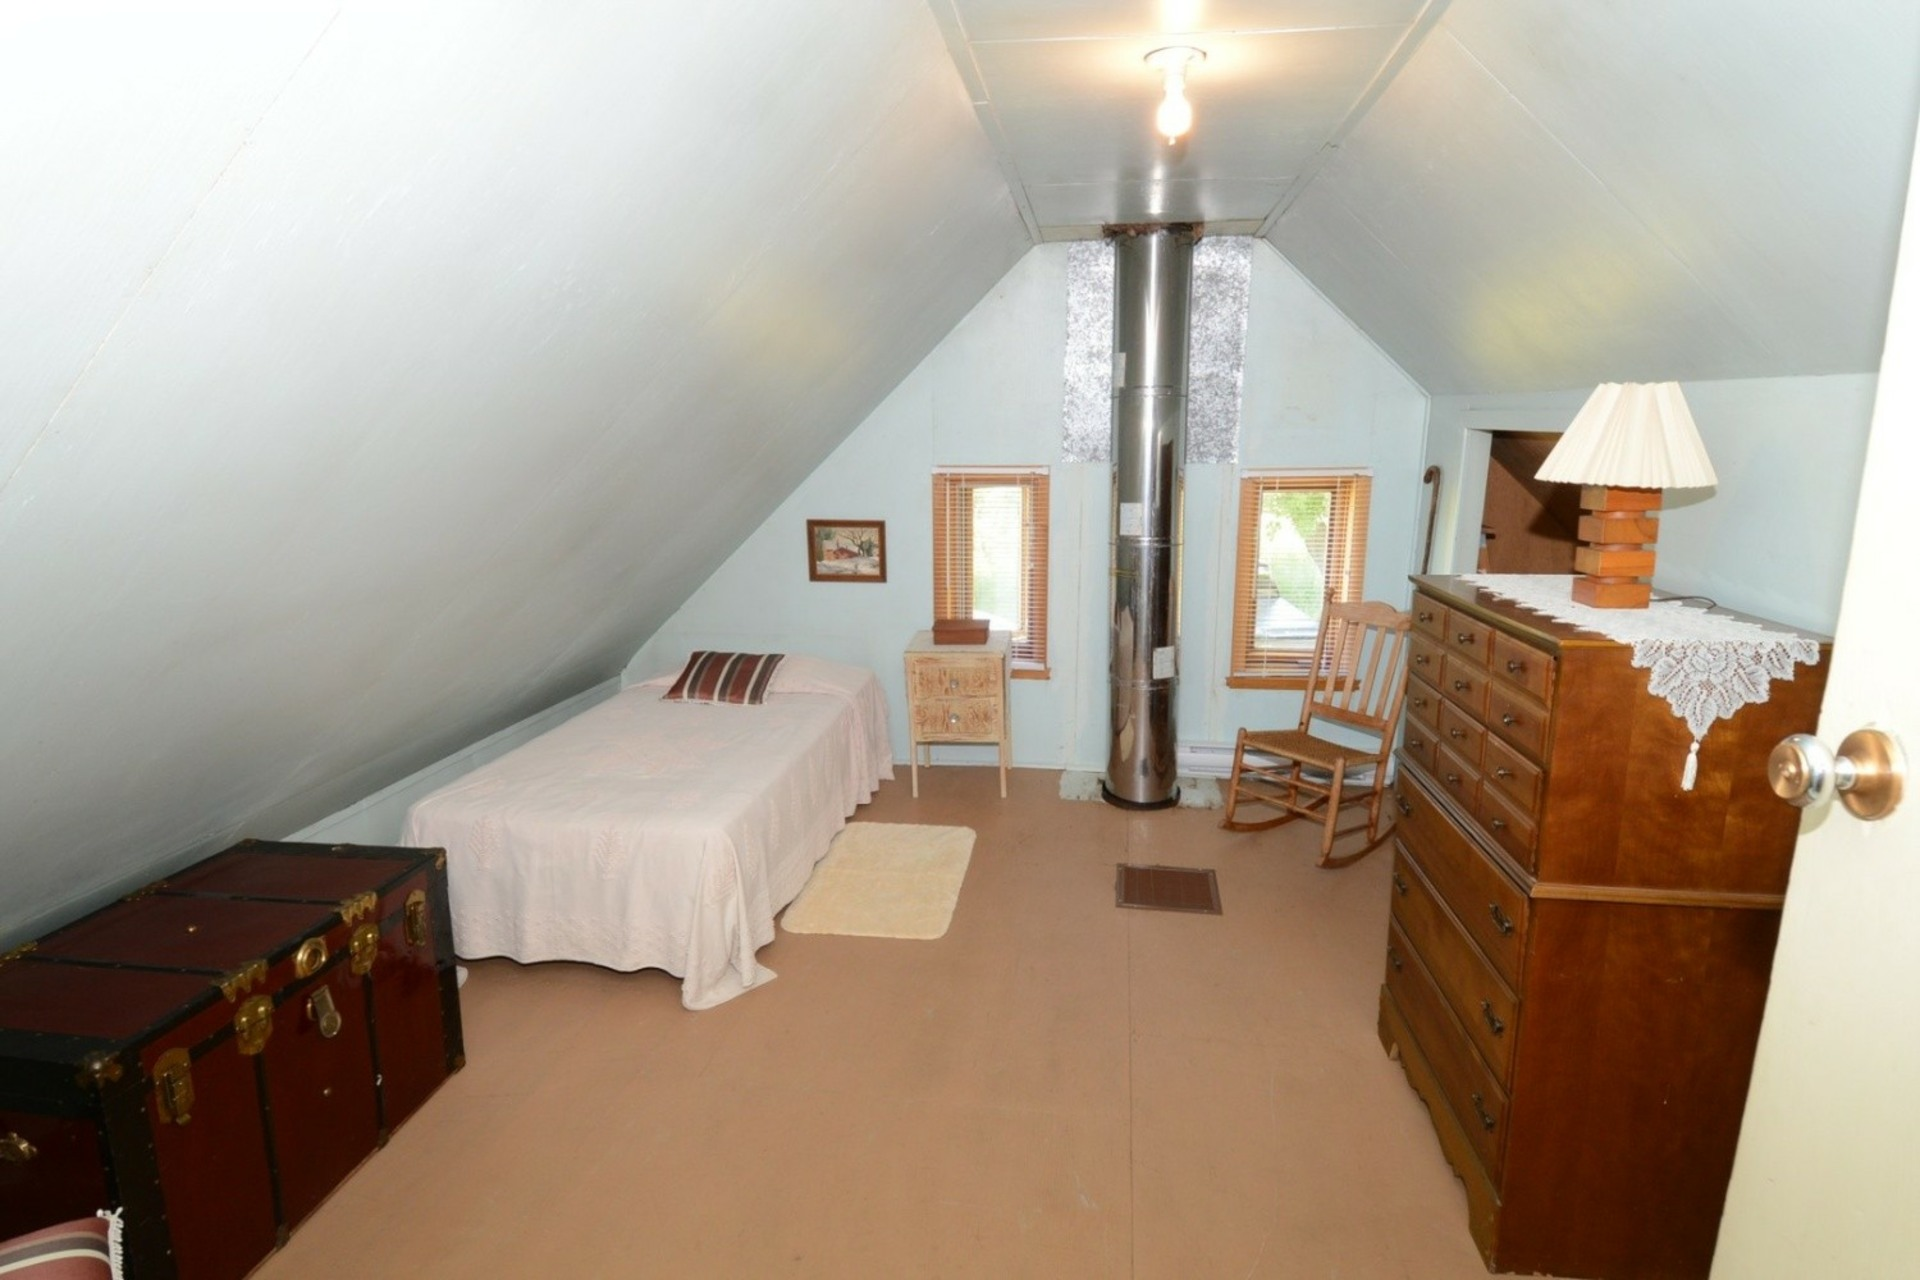 image 14 - Farmhouse For sale Rigaud - 8 rooms